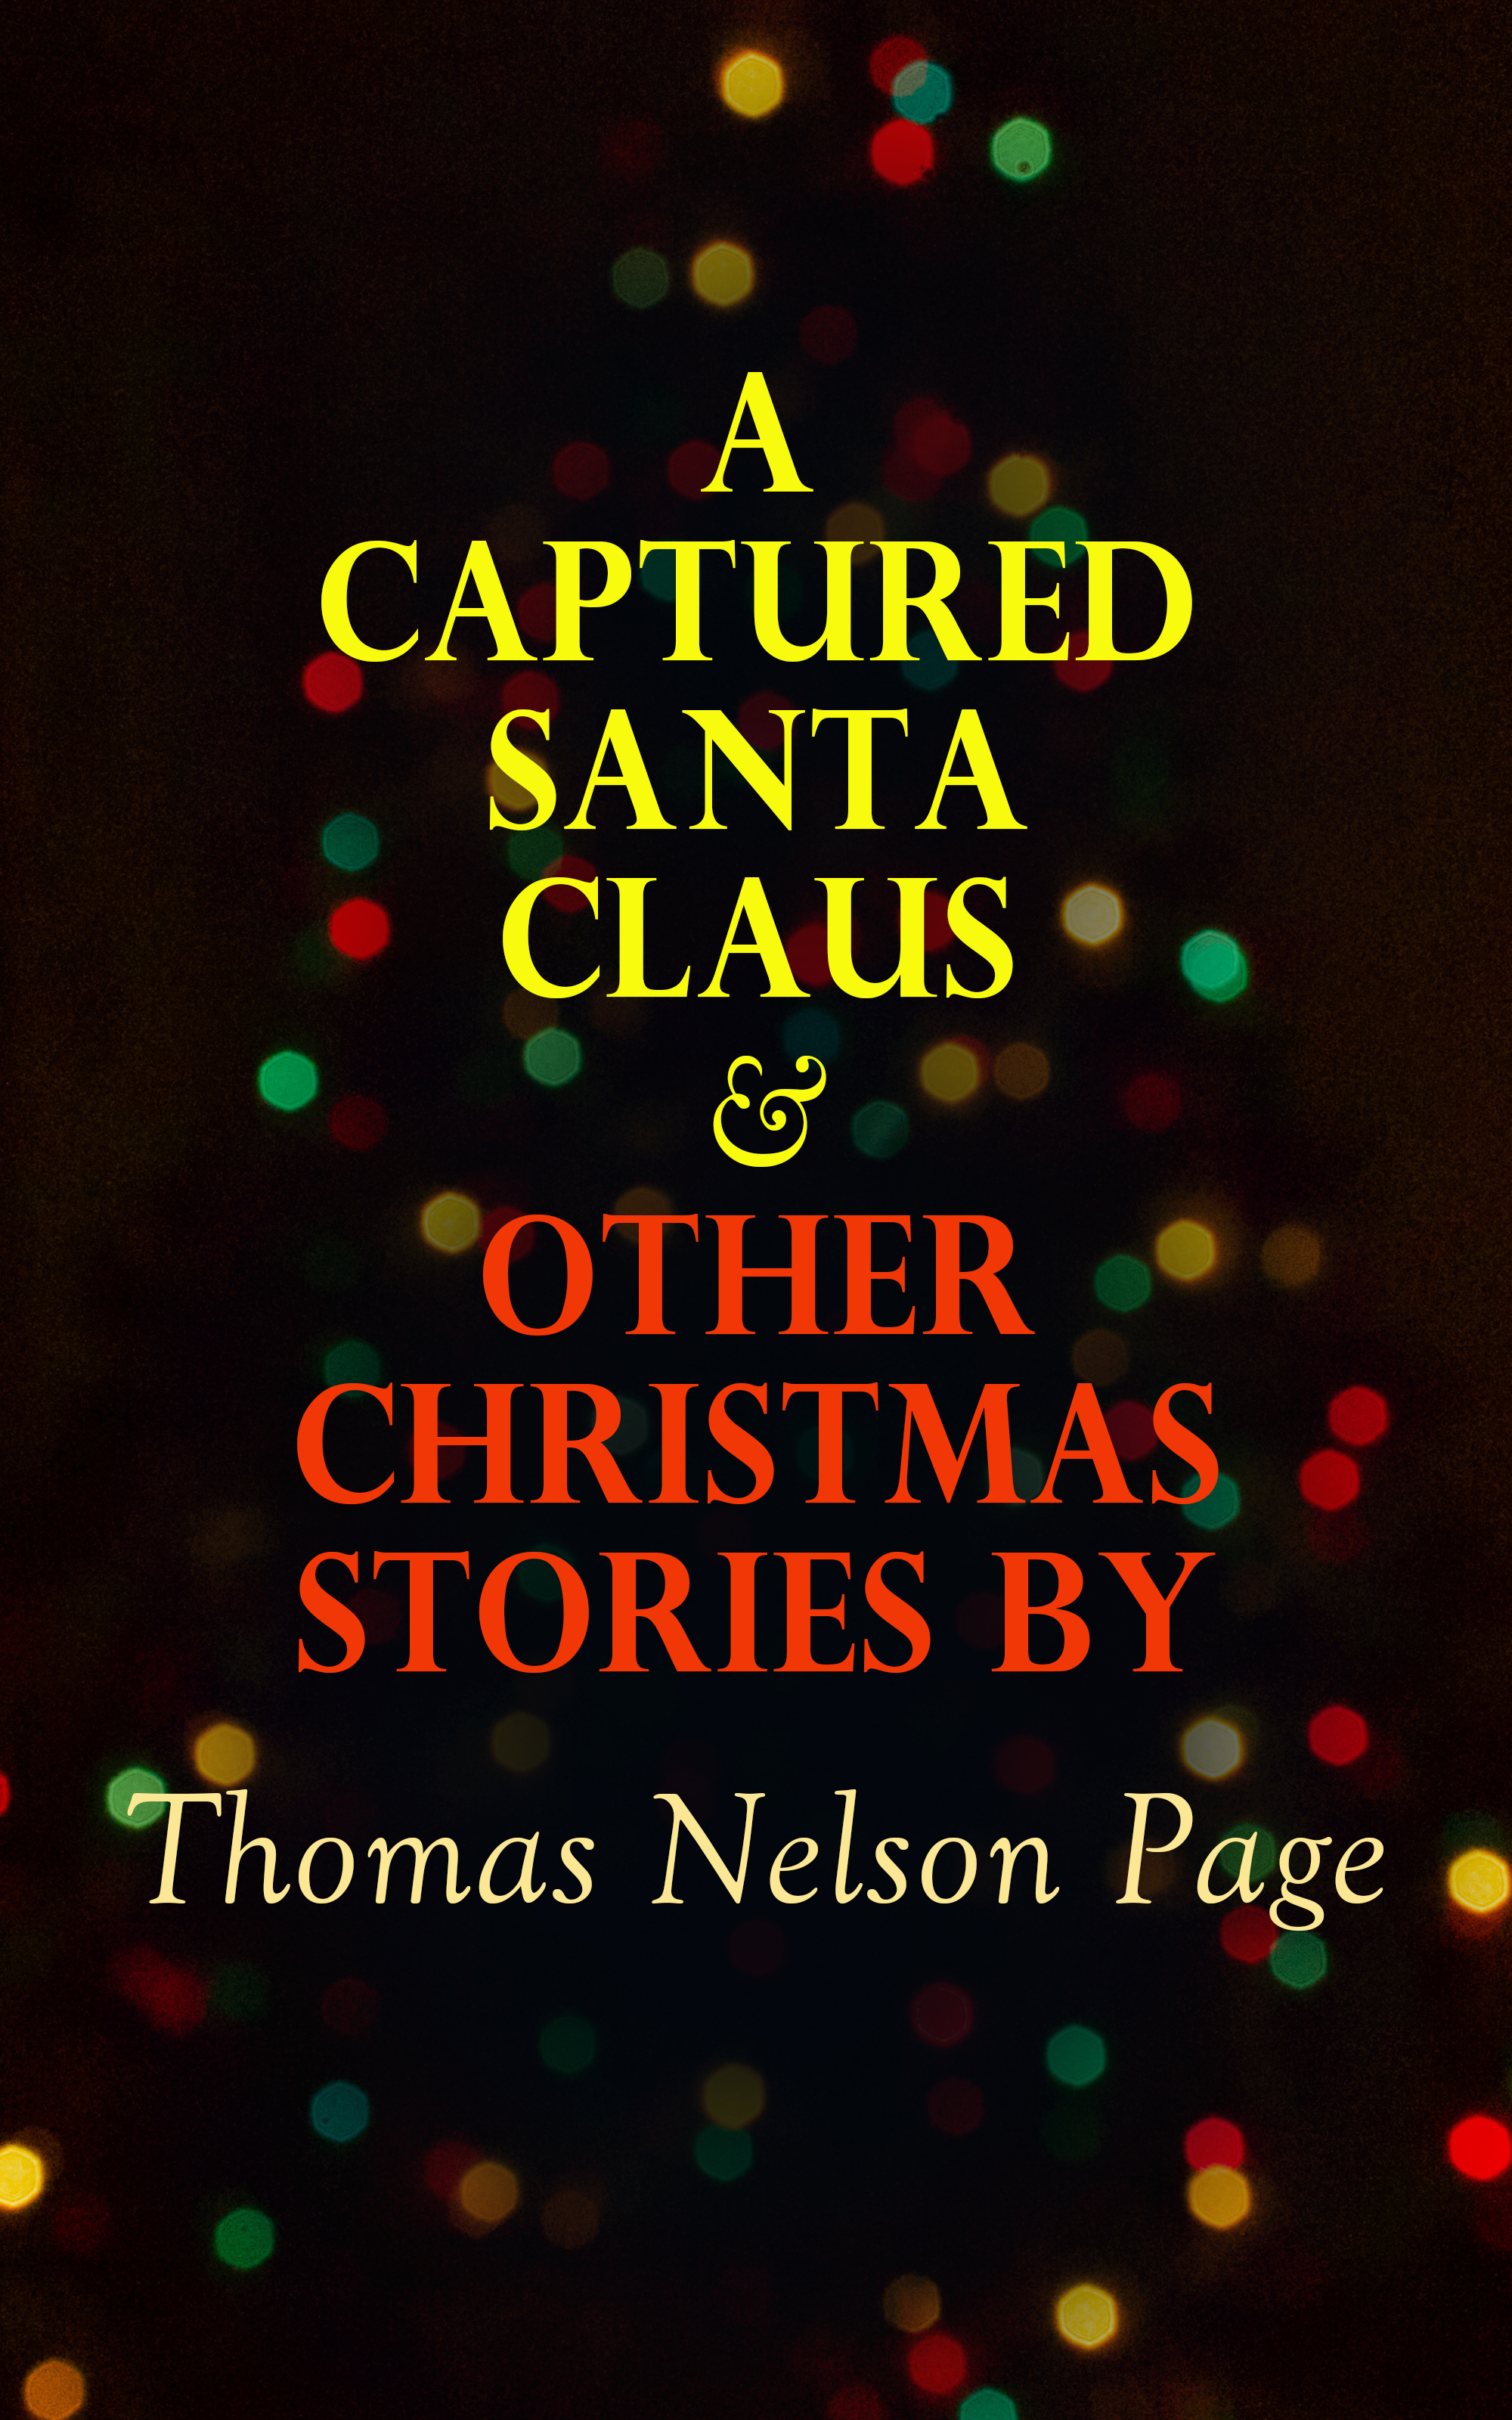 Thomas Nelson Page A Captured Santa Claus & Other Christmas Stories by Thomas Nelson Page подвесной светильник pascoa 39138 page 4 page 4 page 4 page 8 page 5 page 10 page 7 page 3 page 2